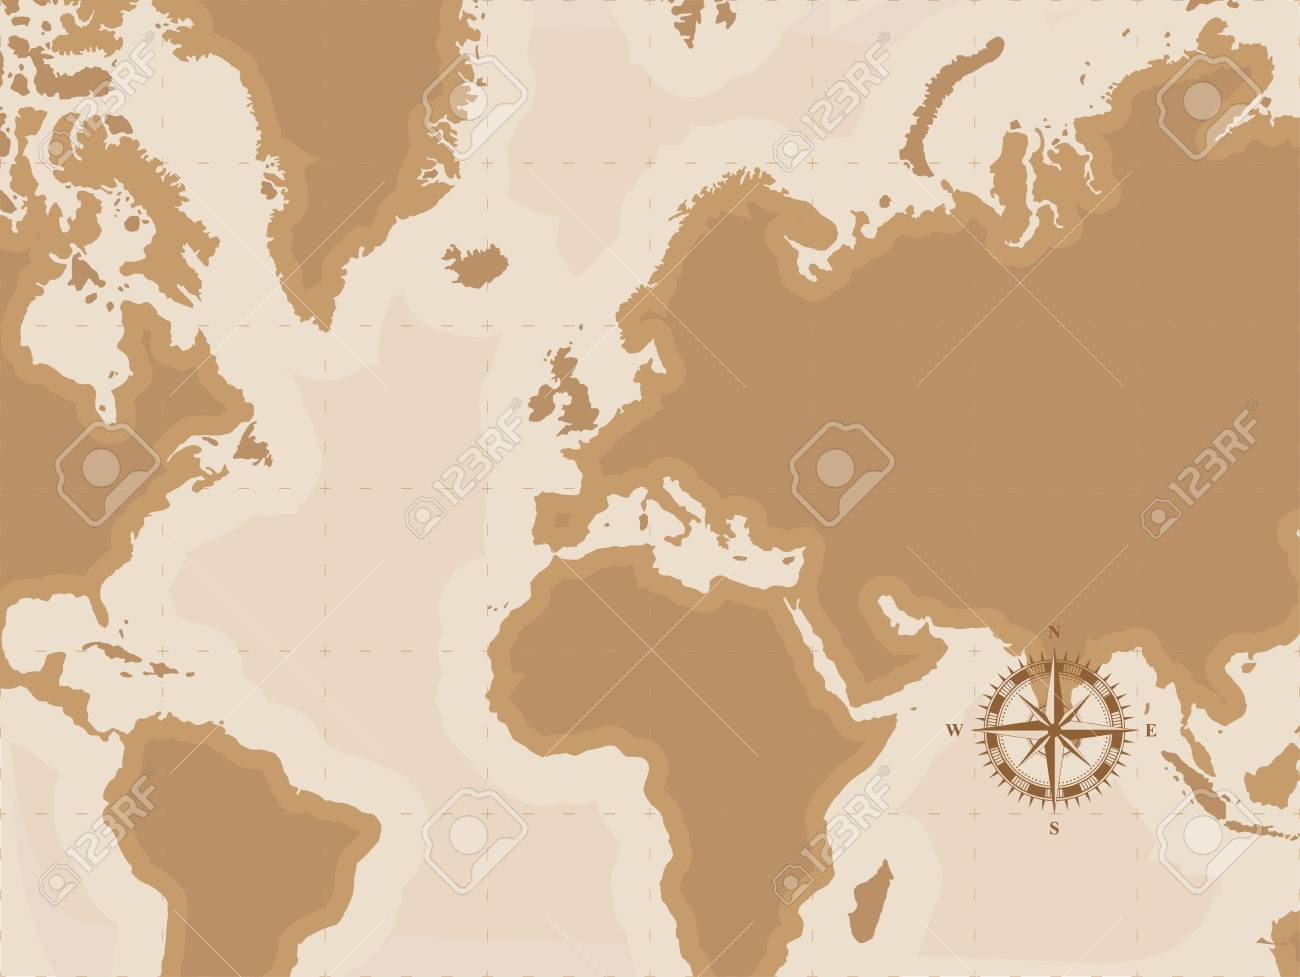 Brown Retro World Map With Compass Flat Vector Illustration